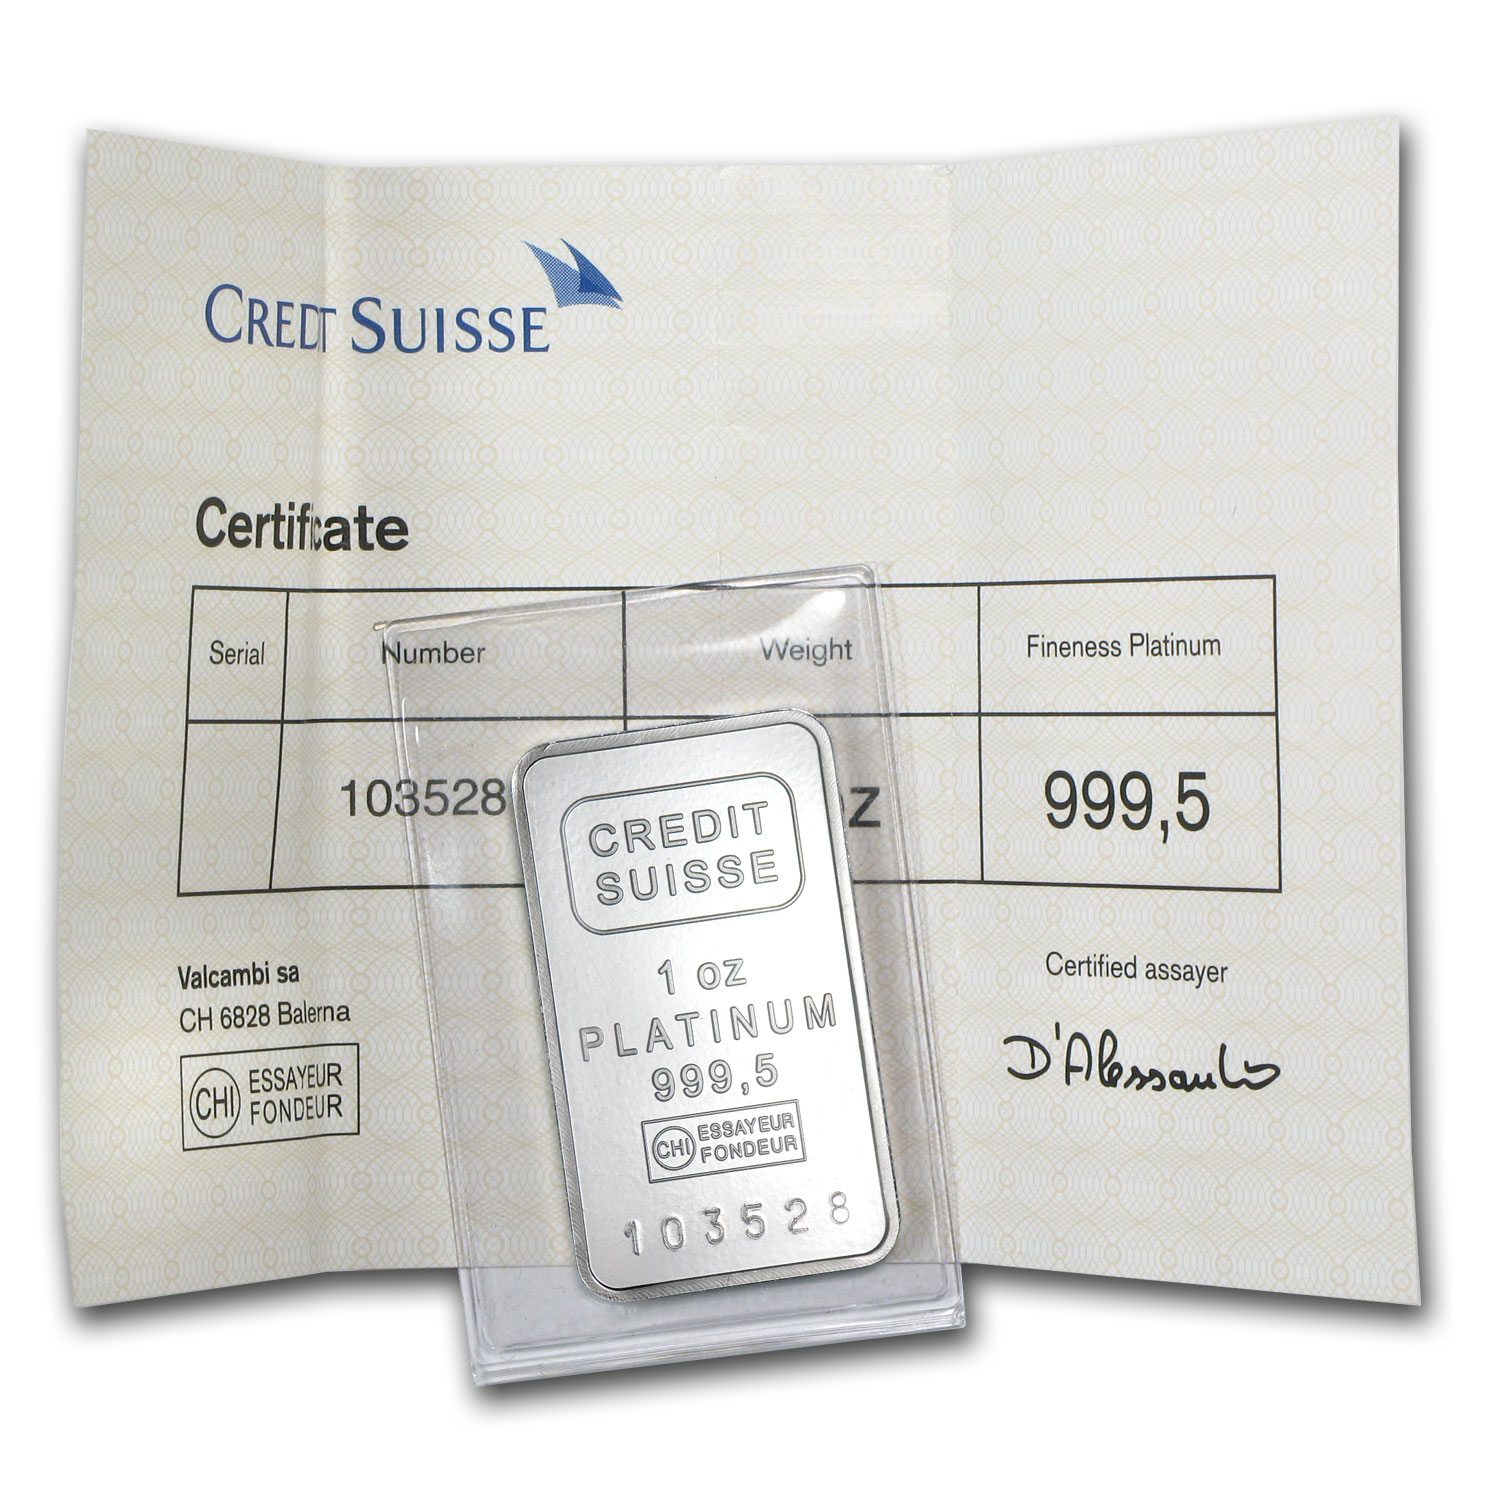 1 oz Credit Suisse Platinum Bar (.9995 Fine, w/Assay)